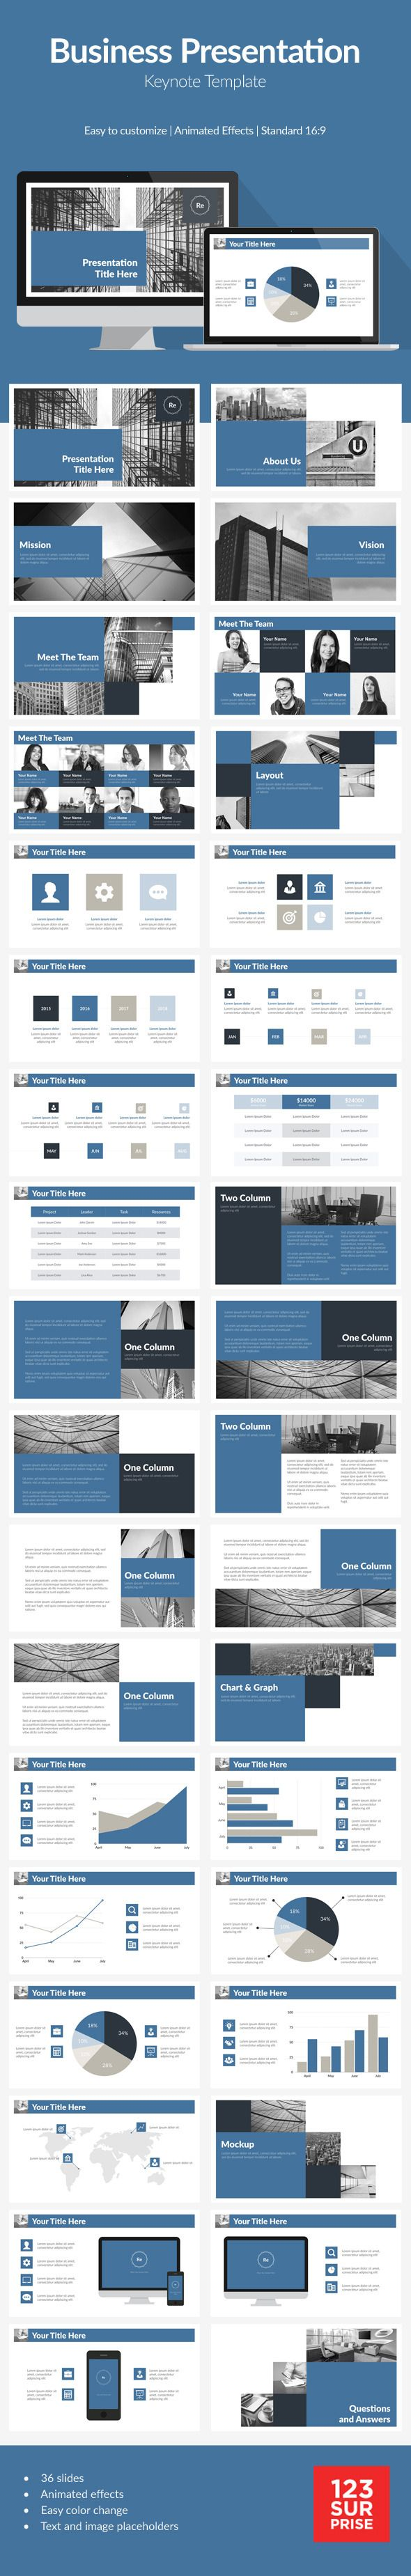 Corporate Business Presentation Template  Business Presentation